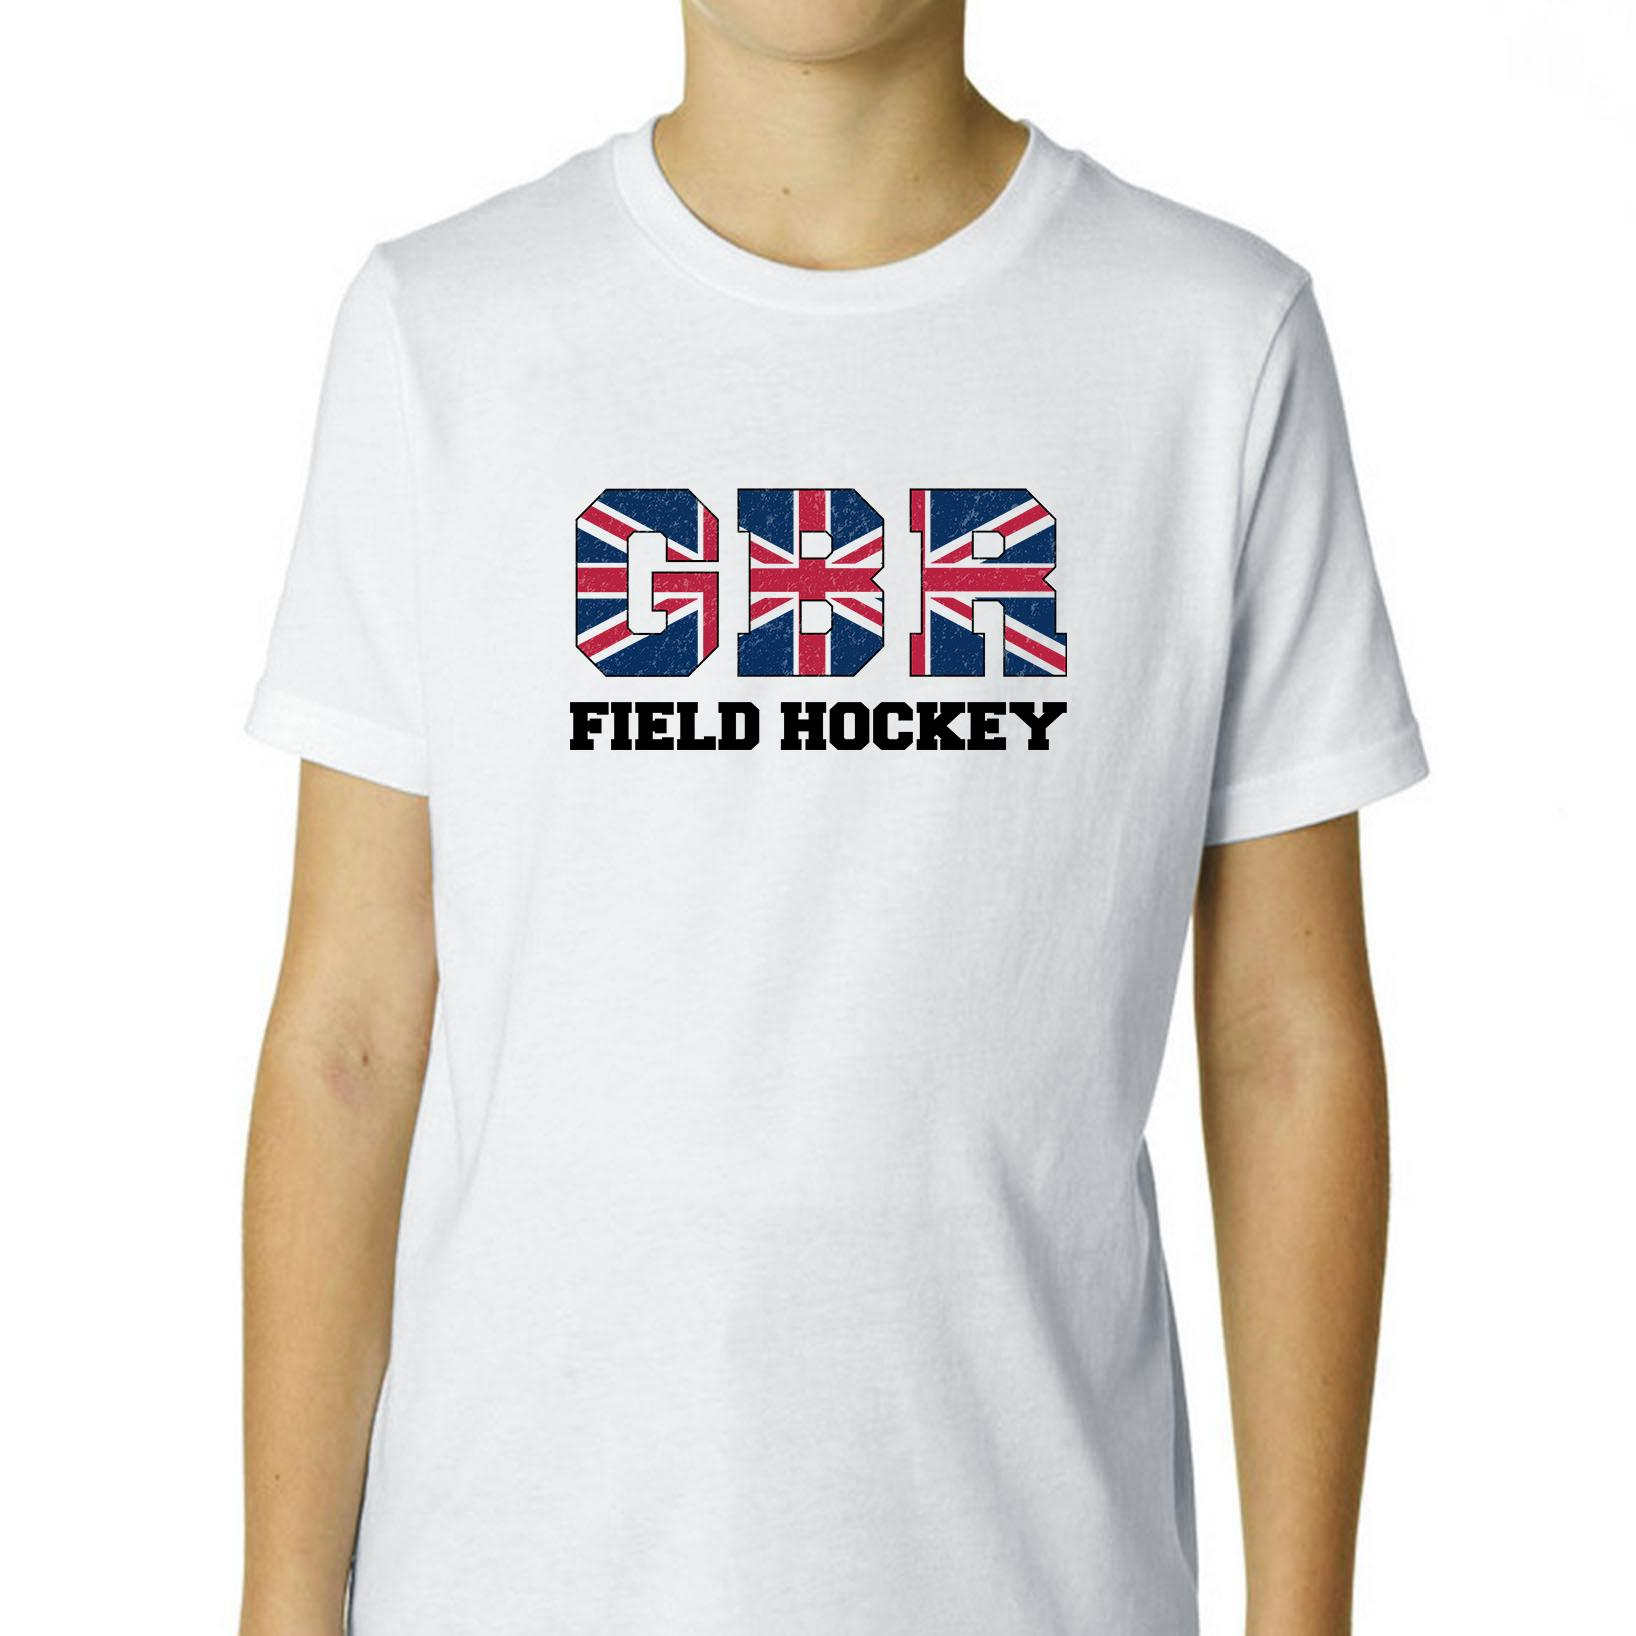 Great Britain Field Hockey Olympic Games Rio Flag Boy's Cotton Youth T-Shirt by Hollywood Thread